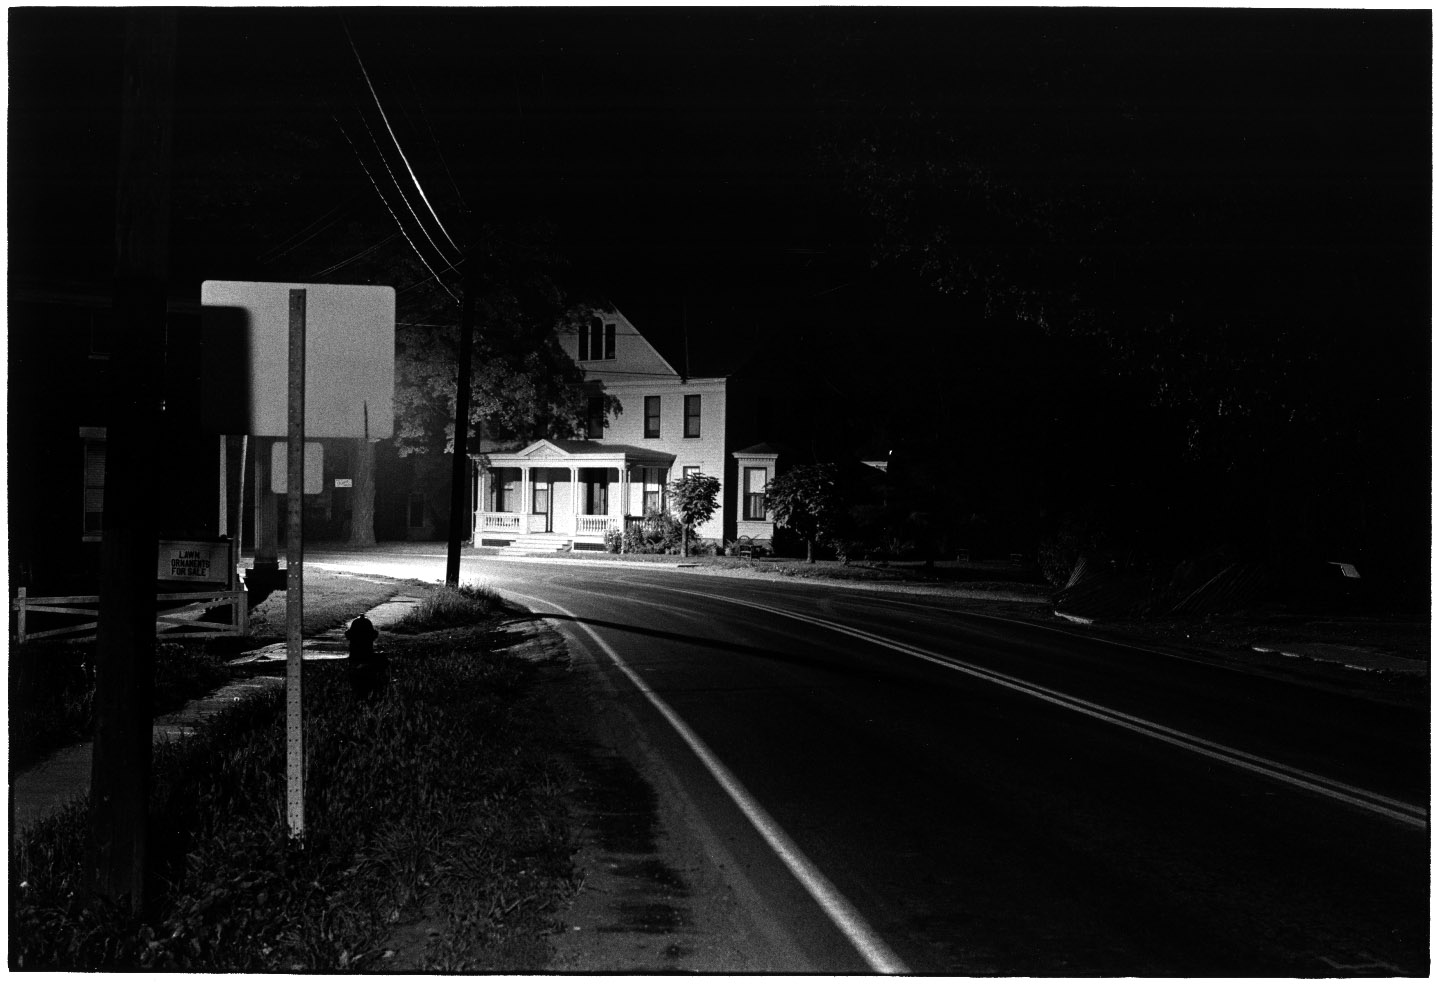 WILLIAM GEDNEY HOUSES AT NIGHT 1960 1973